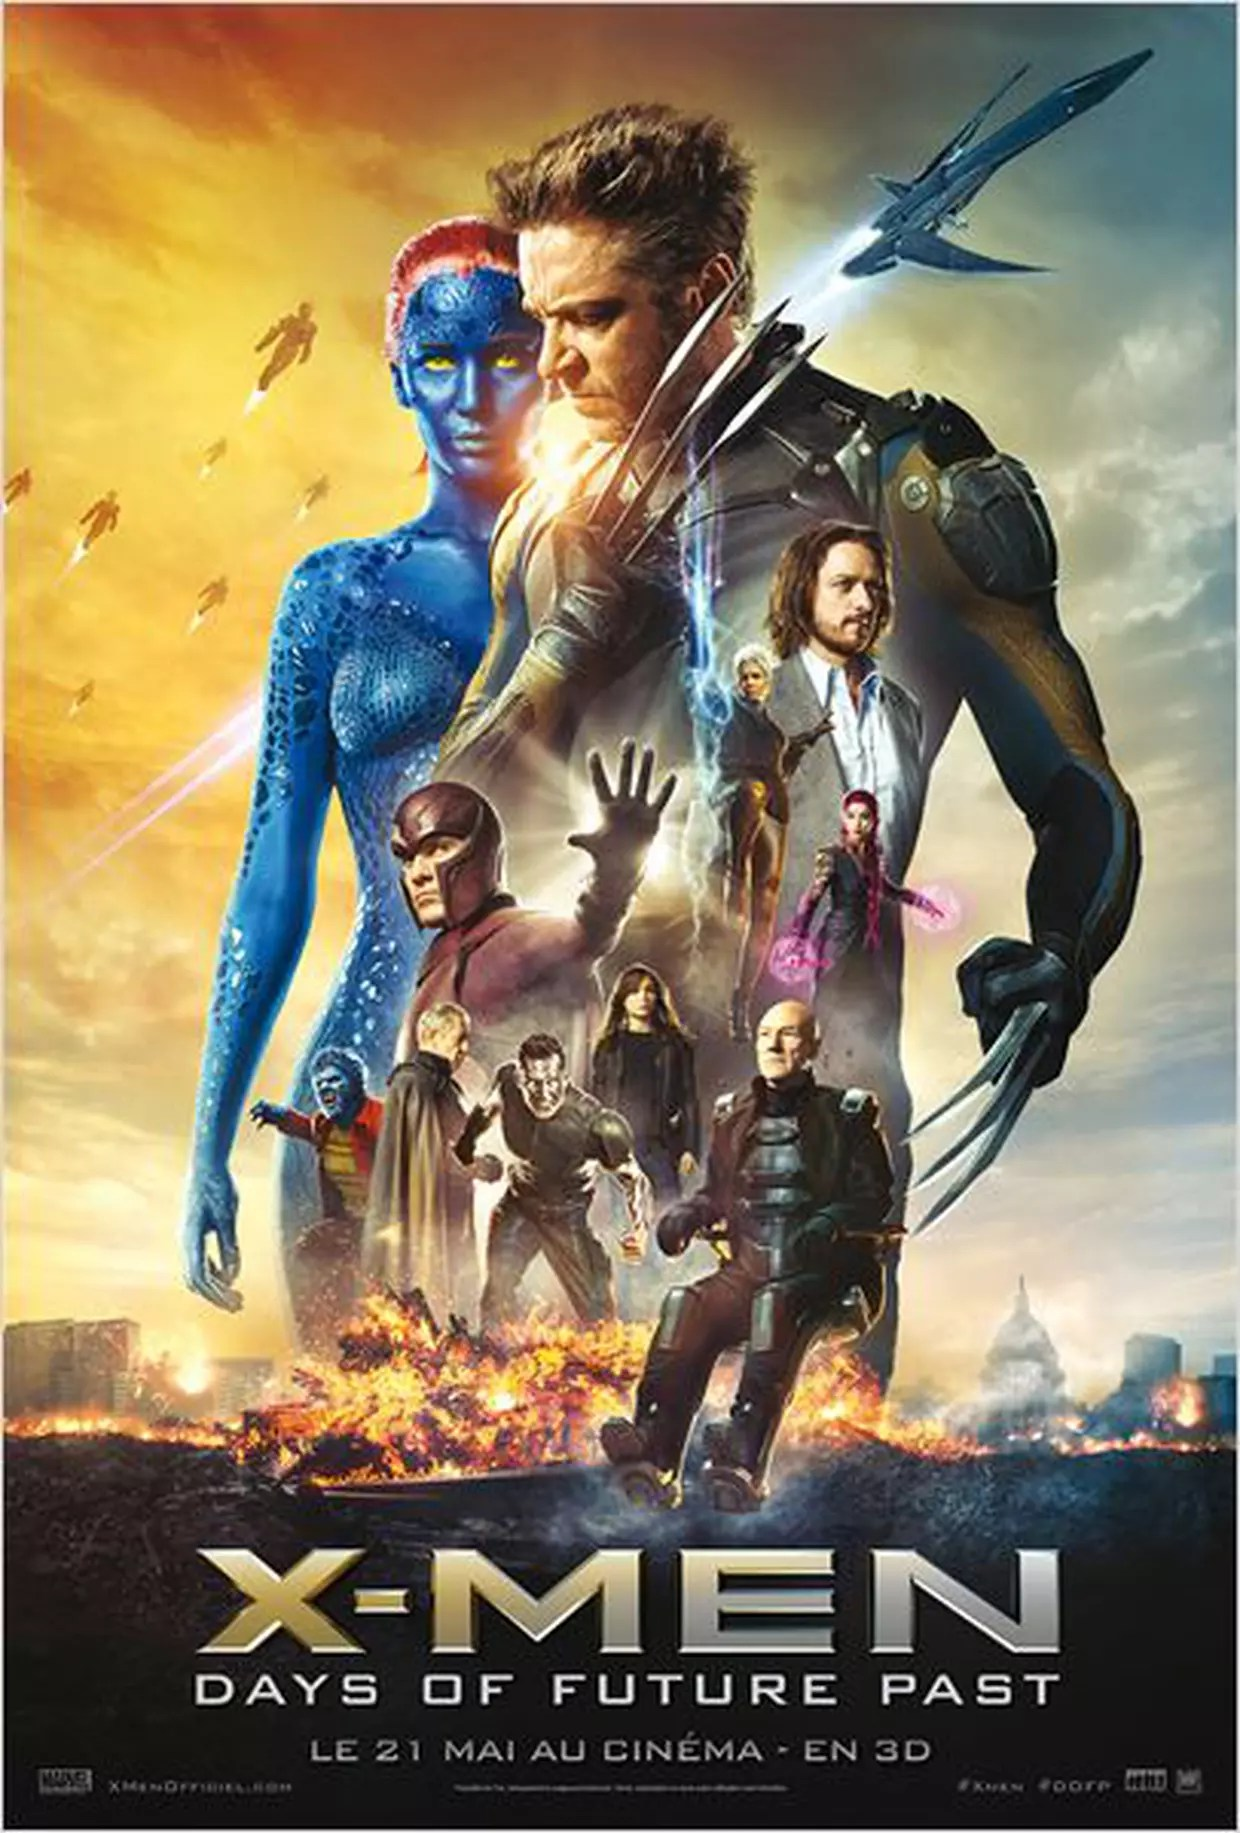 X-men : L'affrontement Final Streaming : x-men, l'affrontement, final, streaming, X-Men, Future, Synopsis,, Casting,, Bande-annonce,, Streaming...